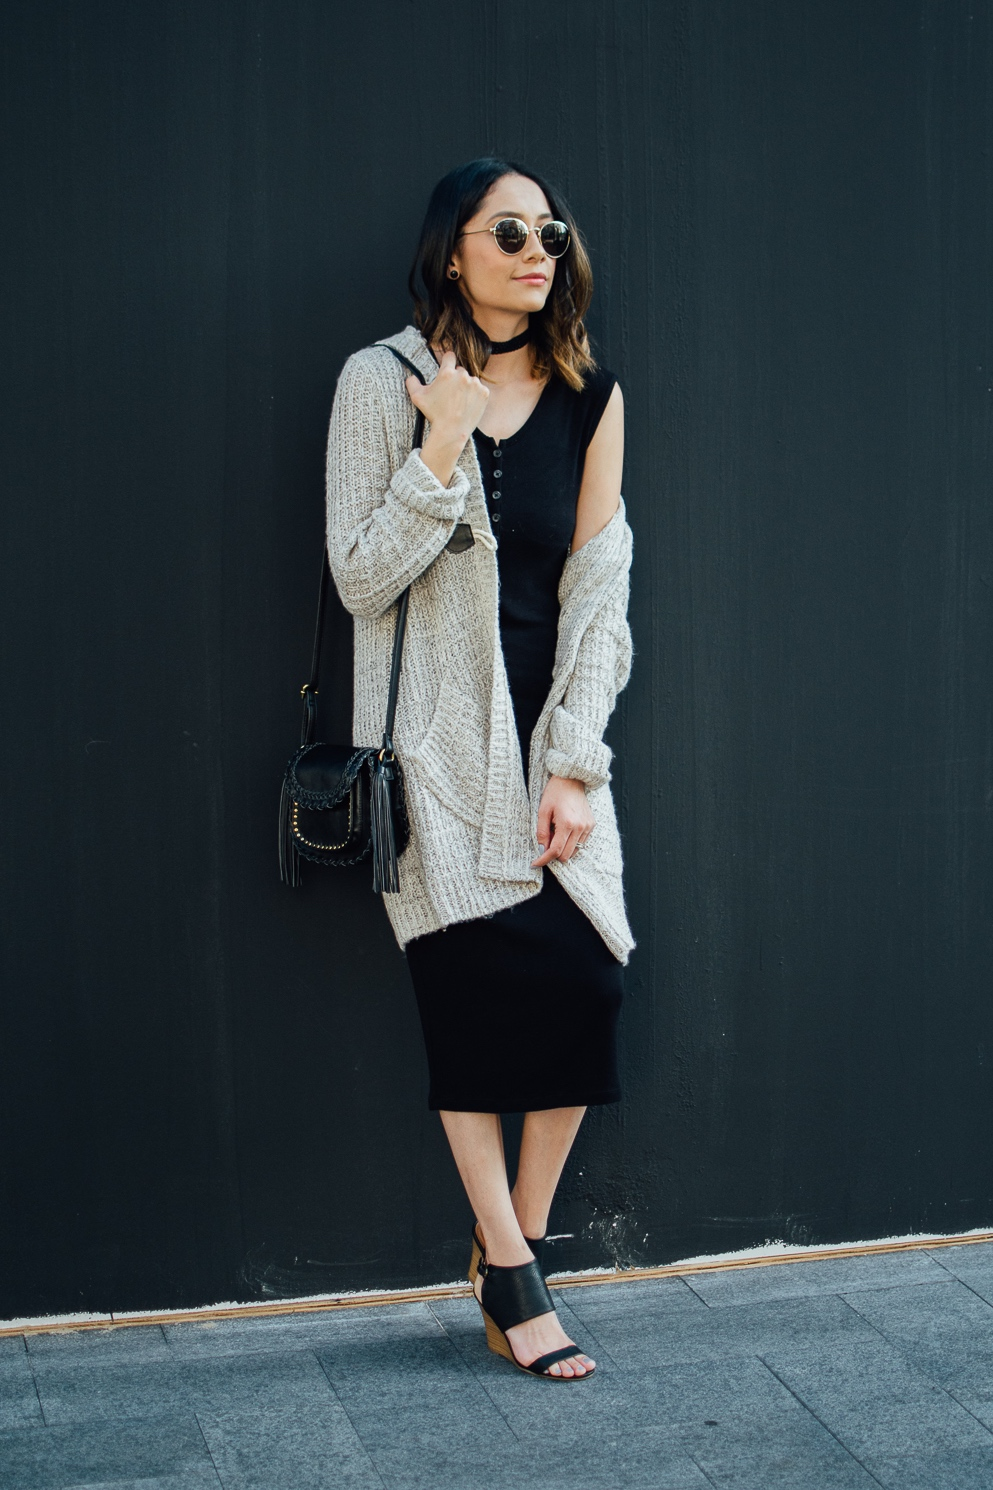 Style blogger Lilly Beltran of Daily Craving in a casual fall look with a long cardigan and black midi dress